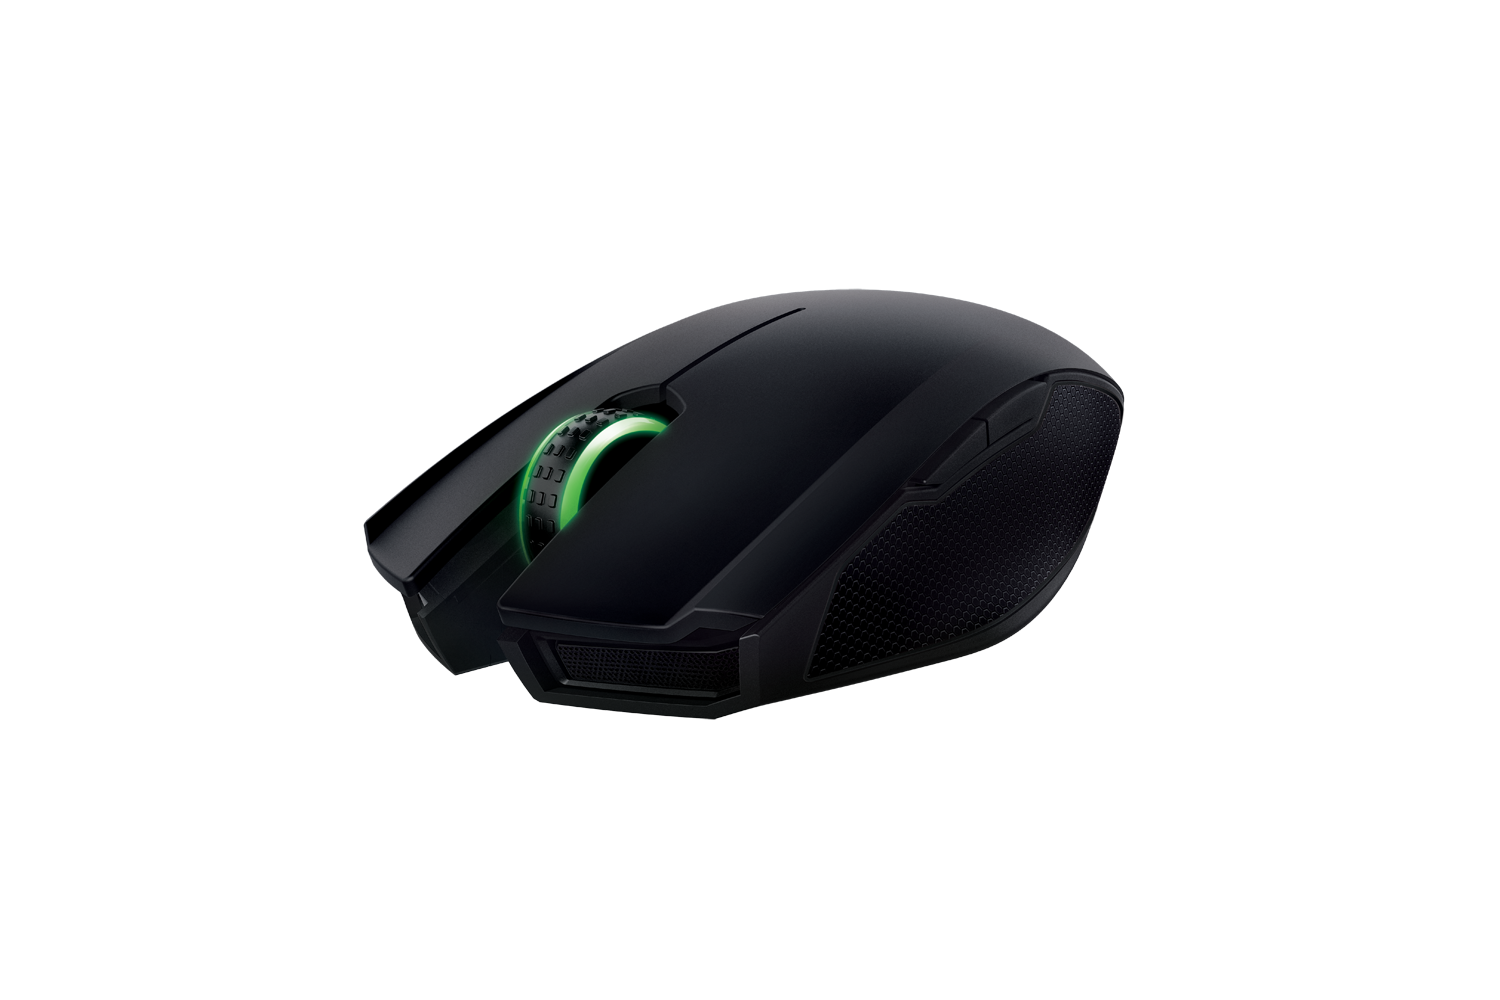 Razer Orochi 2015 Gaming Mouse - Wired / Wireless Mouse